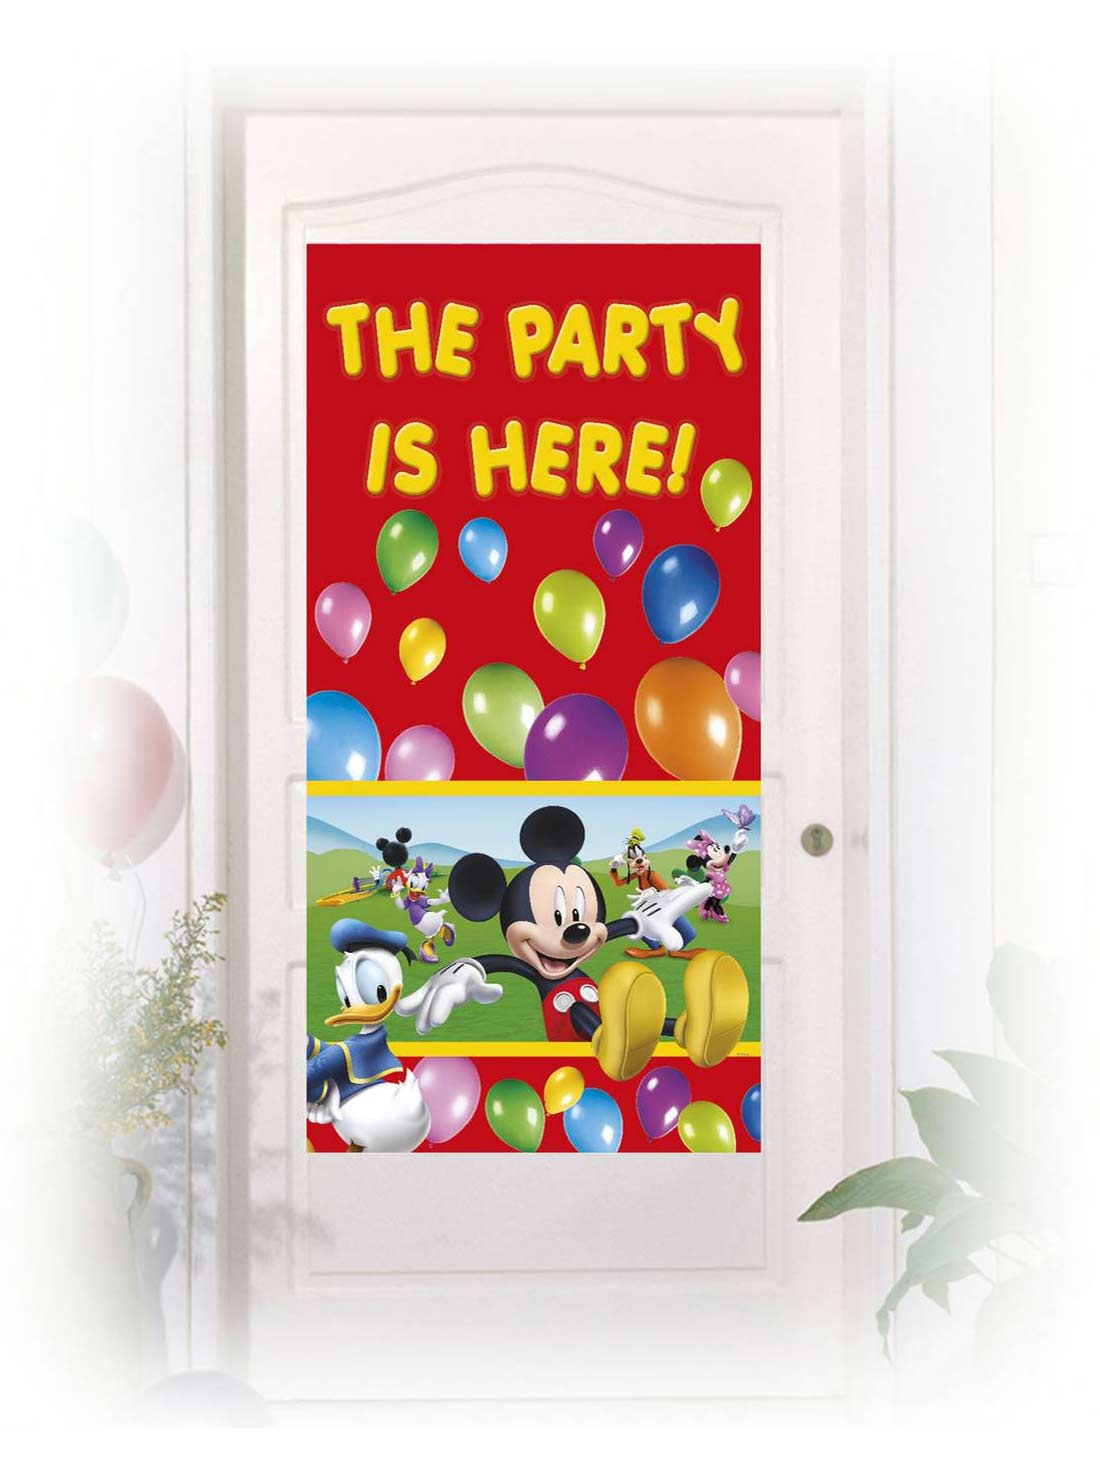 d coration de porte mickey mouse d coration anniversaire et f tes th me sur vegaoo party. Black Bedroom Furniture Sets. Home Design Ideas